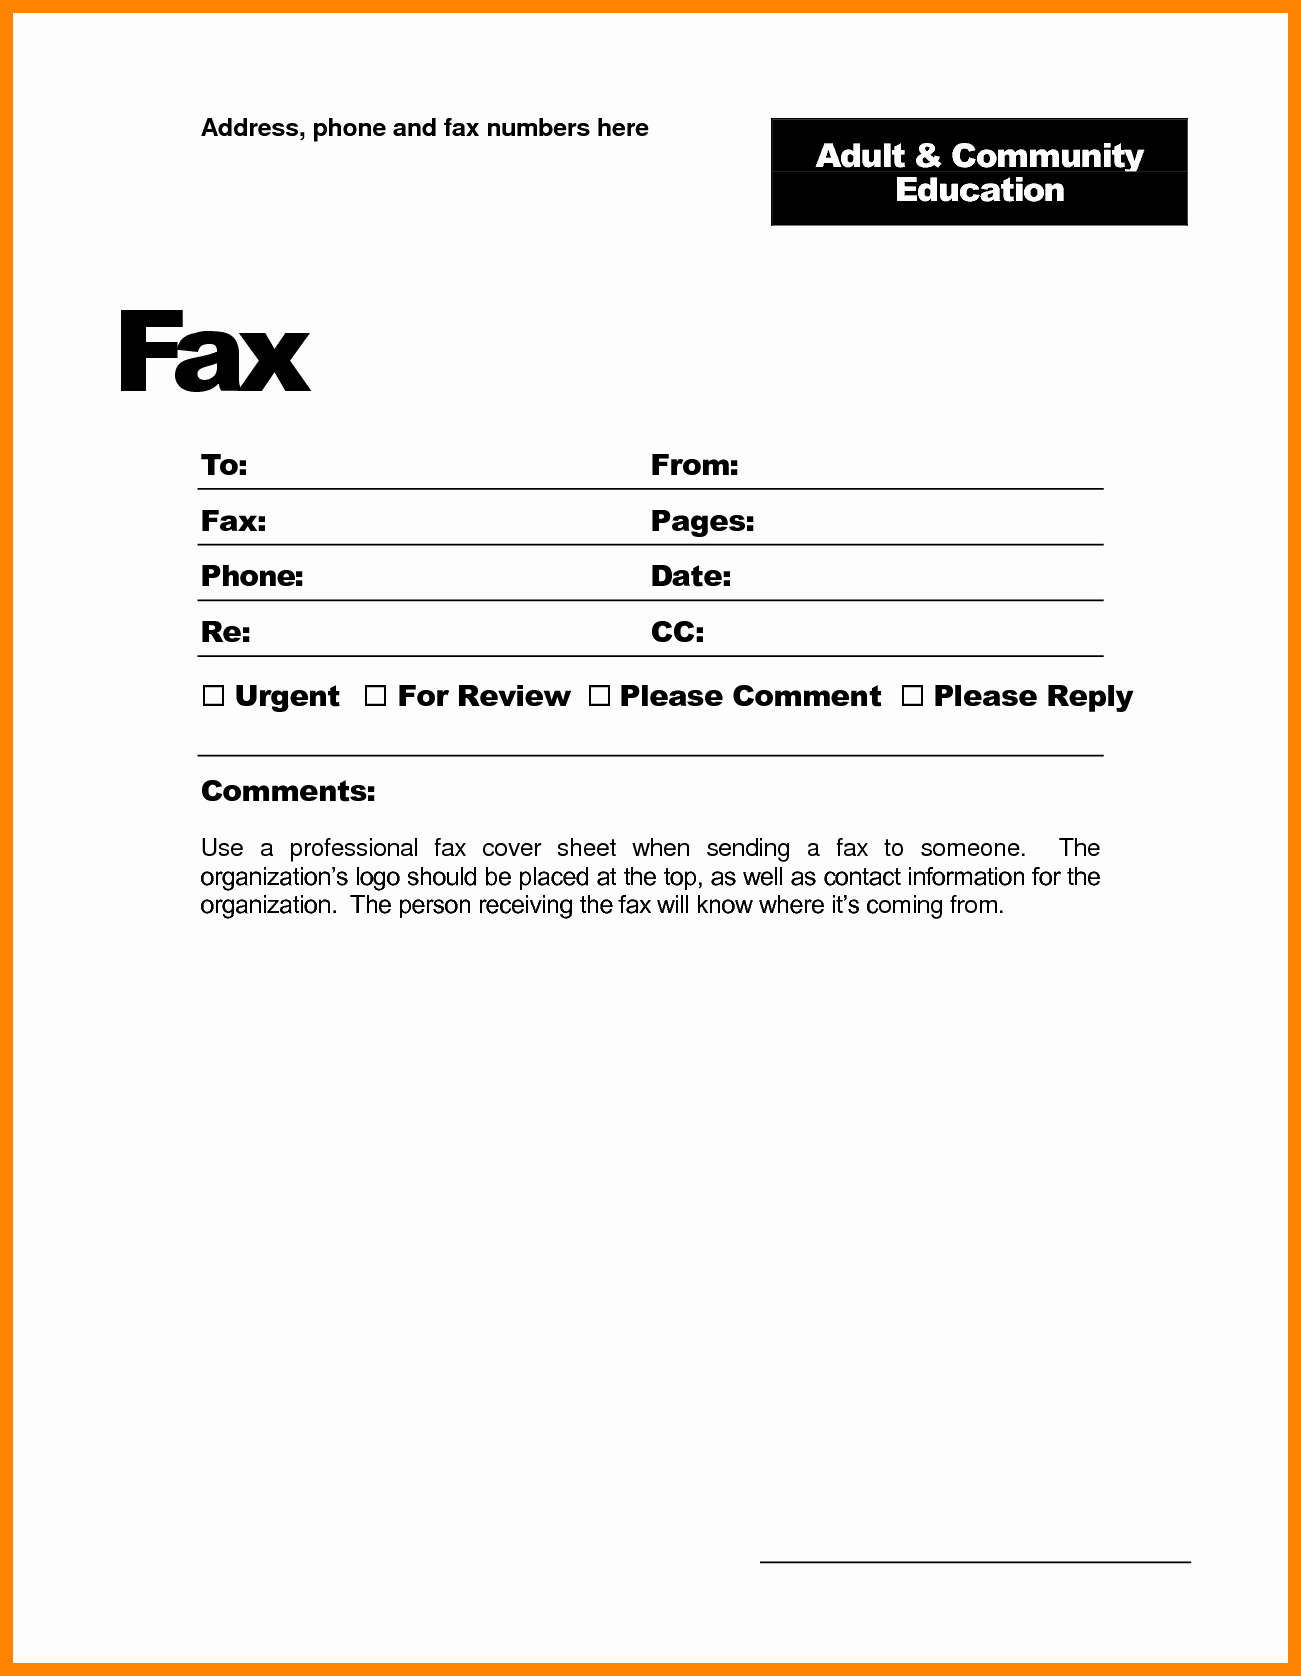 Fax Cover Sheet Sample Template Lovely Fax Cover Template Word Portablegasgrillweber